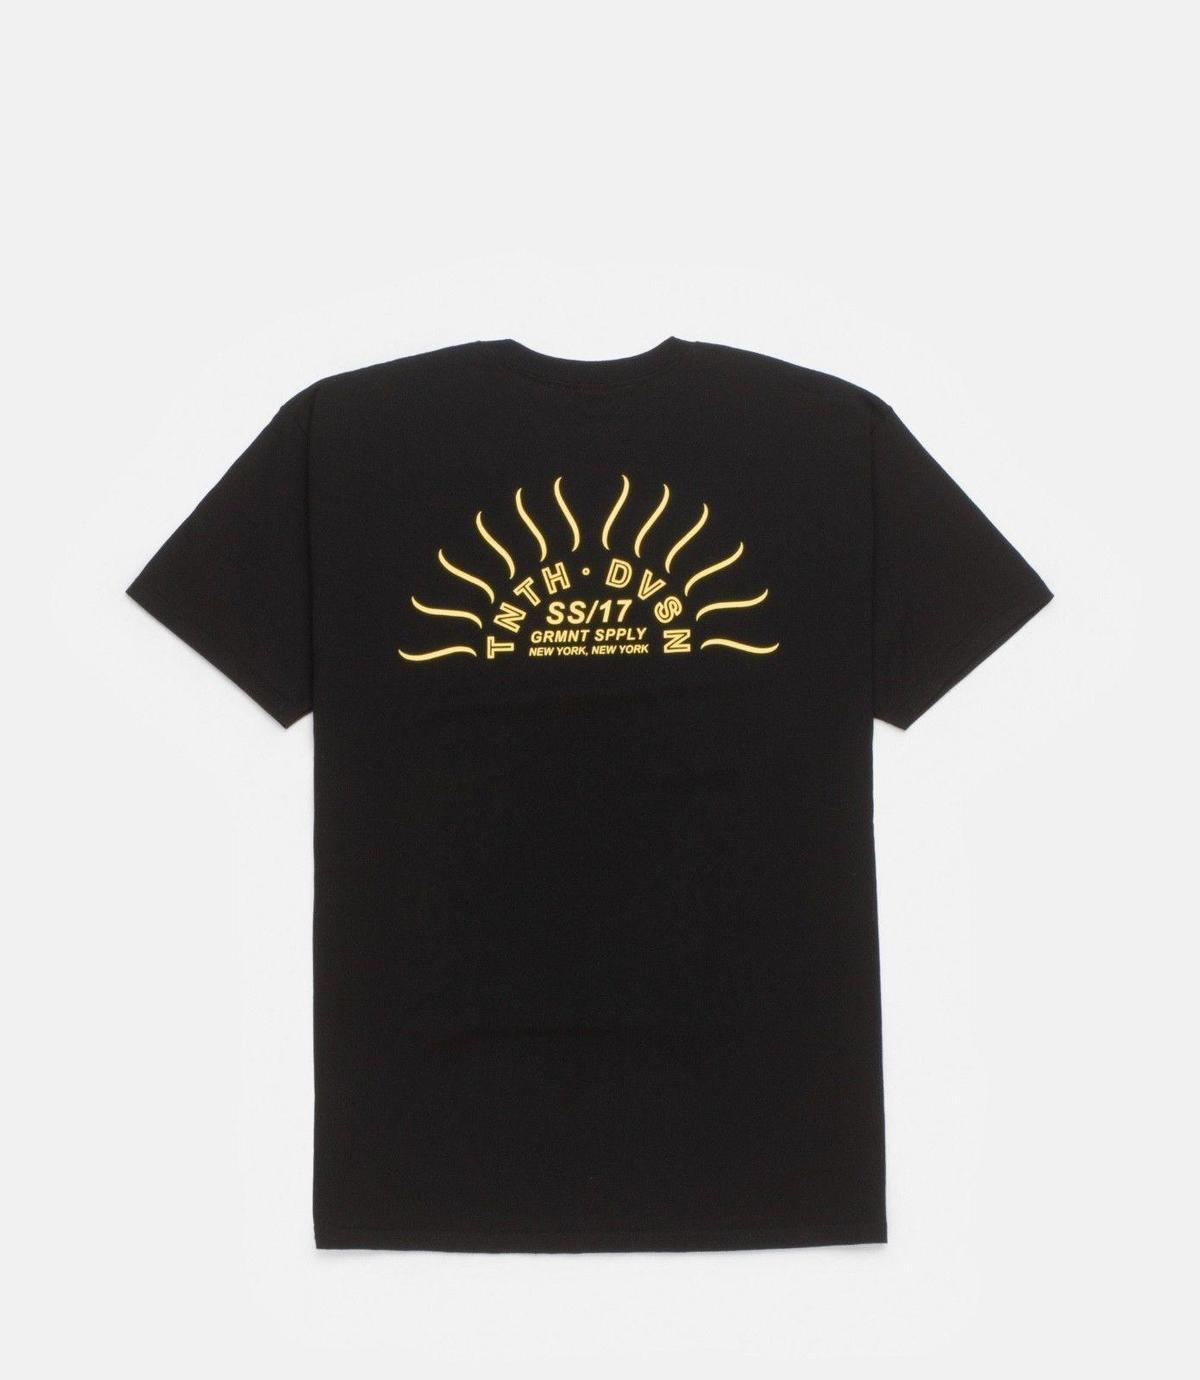 90a2b122 10 DEEP SUNRISE S/S TEE BLACK MADE IN U.S.A. R Shirt Political Tee Shirts  From Amesion98, $12.08| DHgate.Com